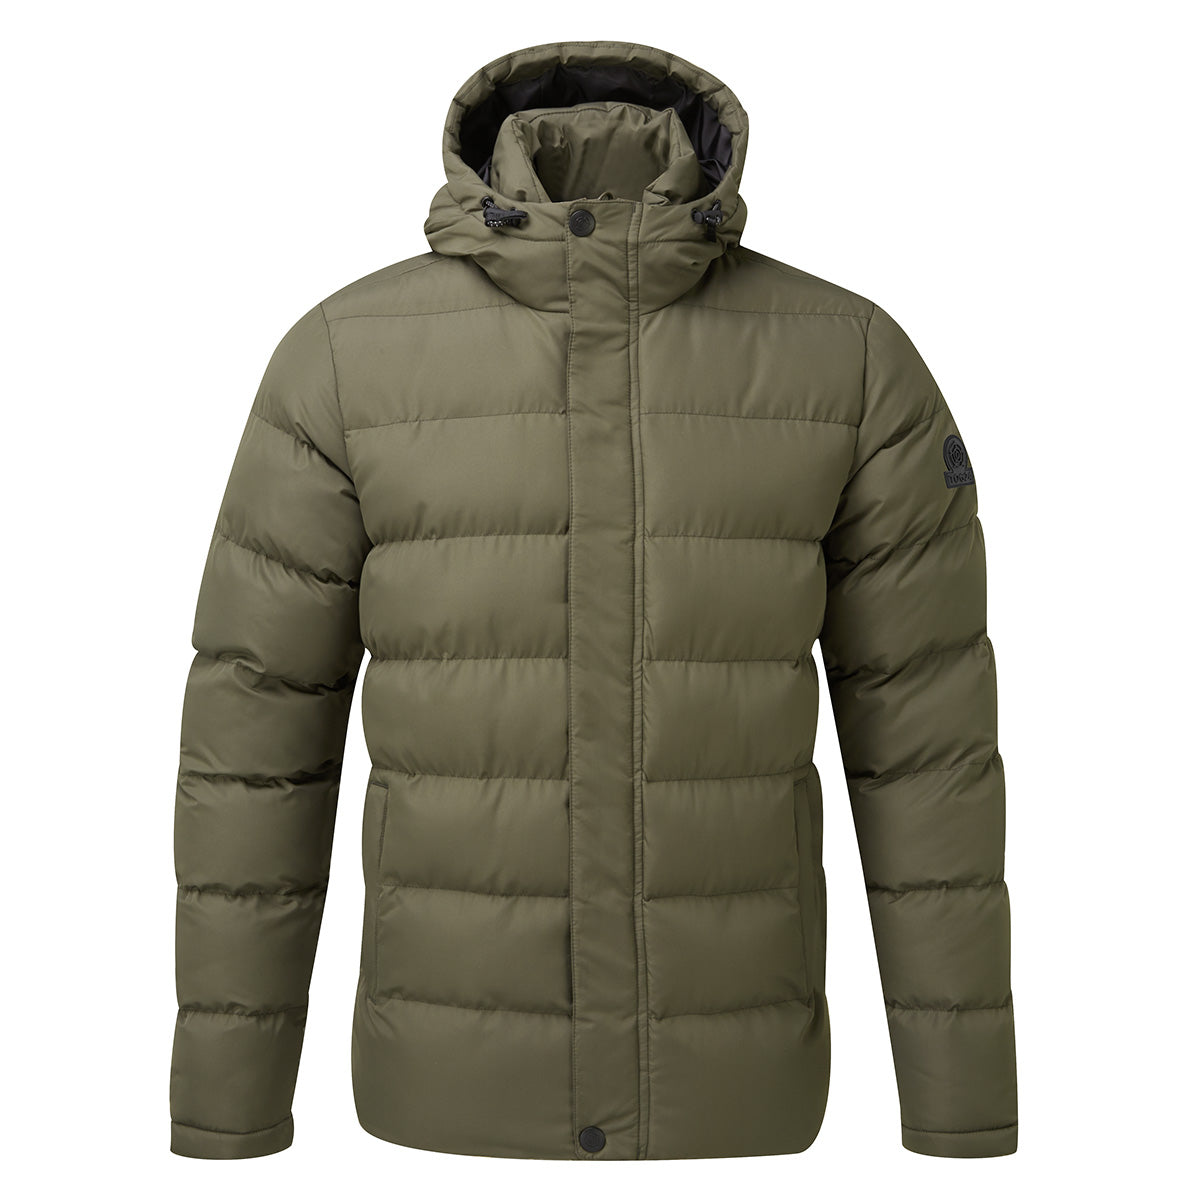 Hexham Mens Long Insulated Jacket - Dark Khaki image 4